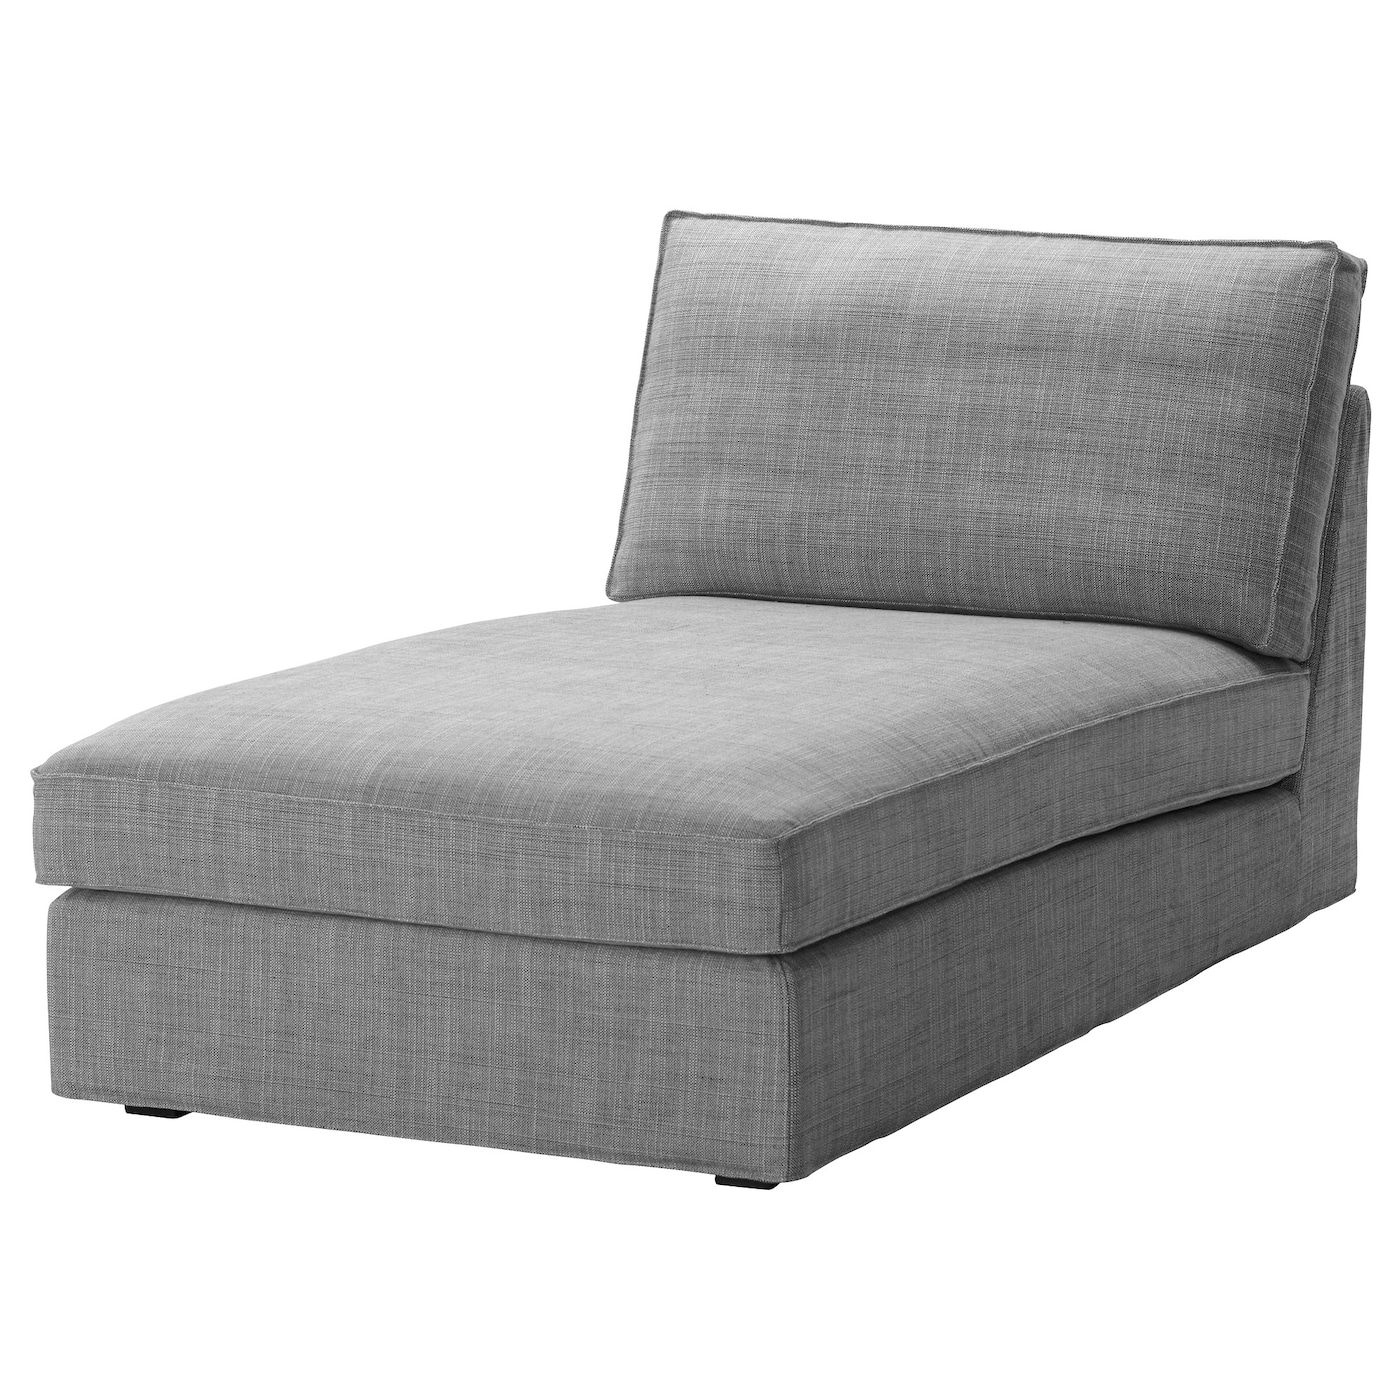 Kivik chaise longue isunda grey ikea for Chaise longue jardin ikea